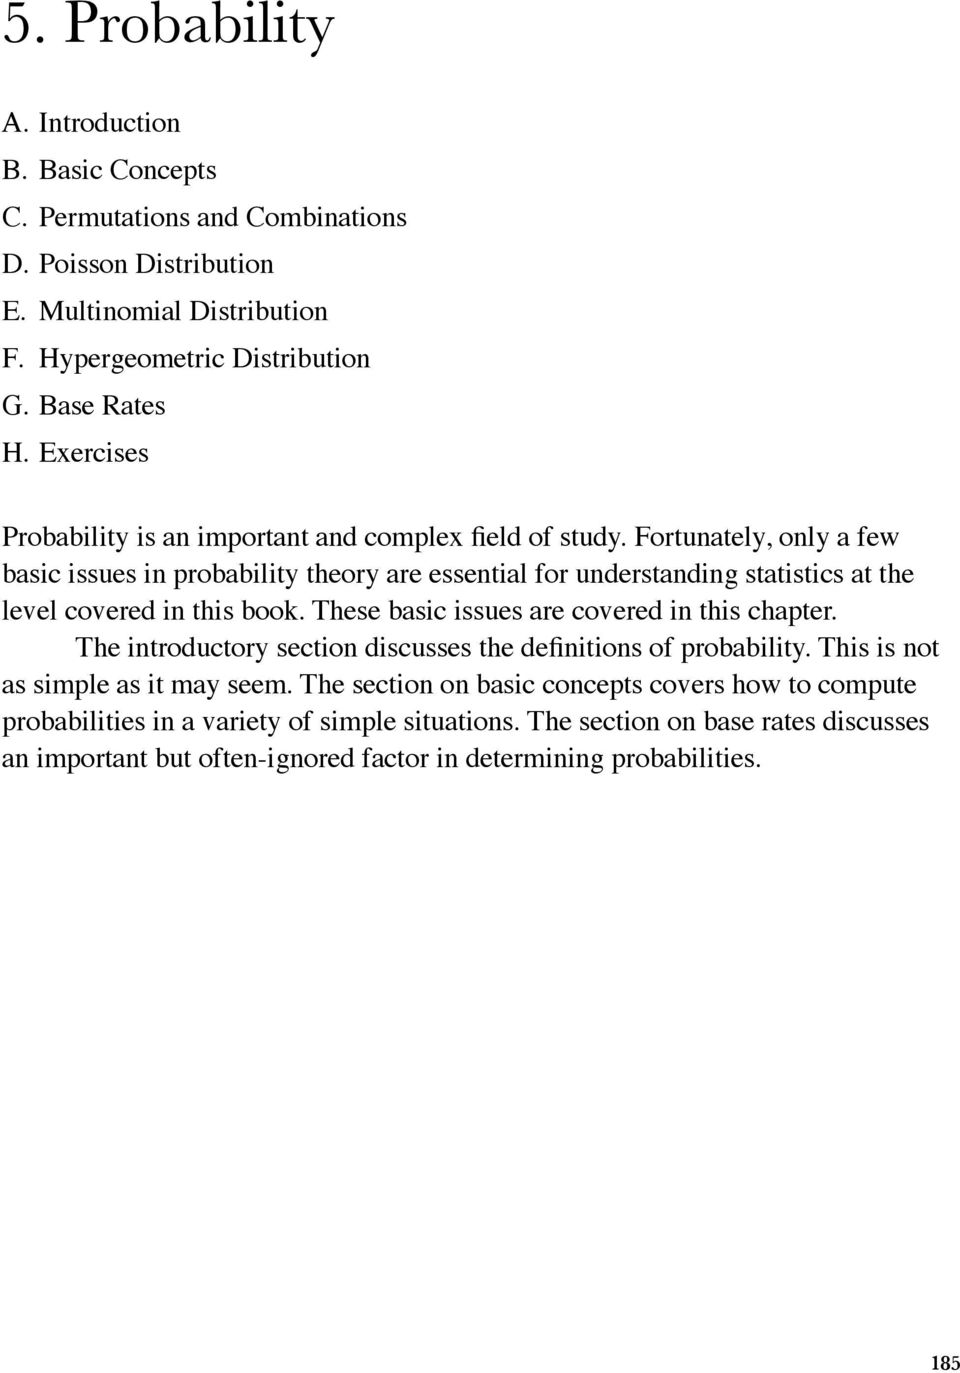 Remarks on the Concept of Probability - PDF